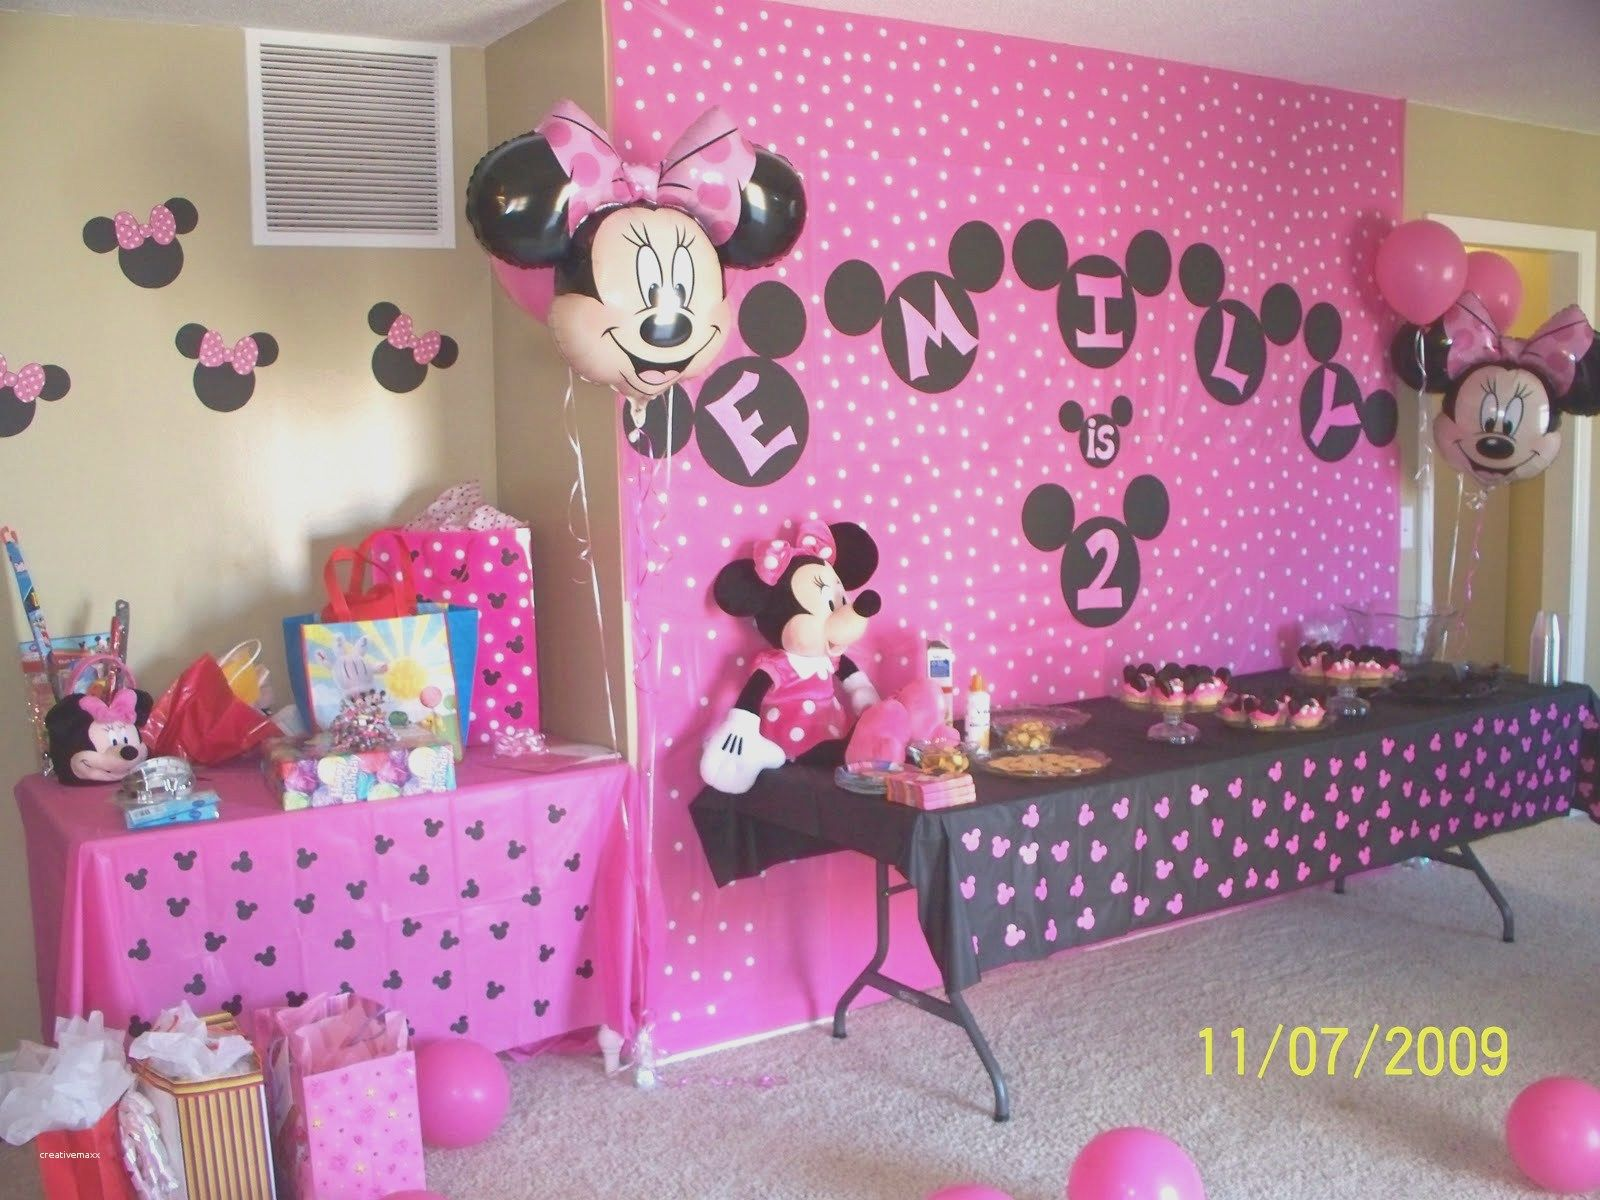 New Disney House Decorations Ideas Mickey Mouse (24 Inspiration images #disneyhousedecor